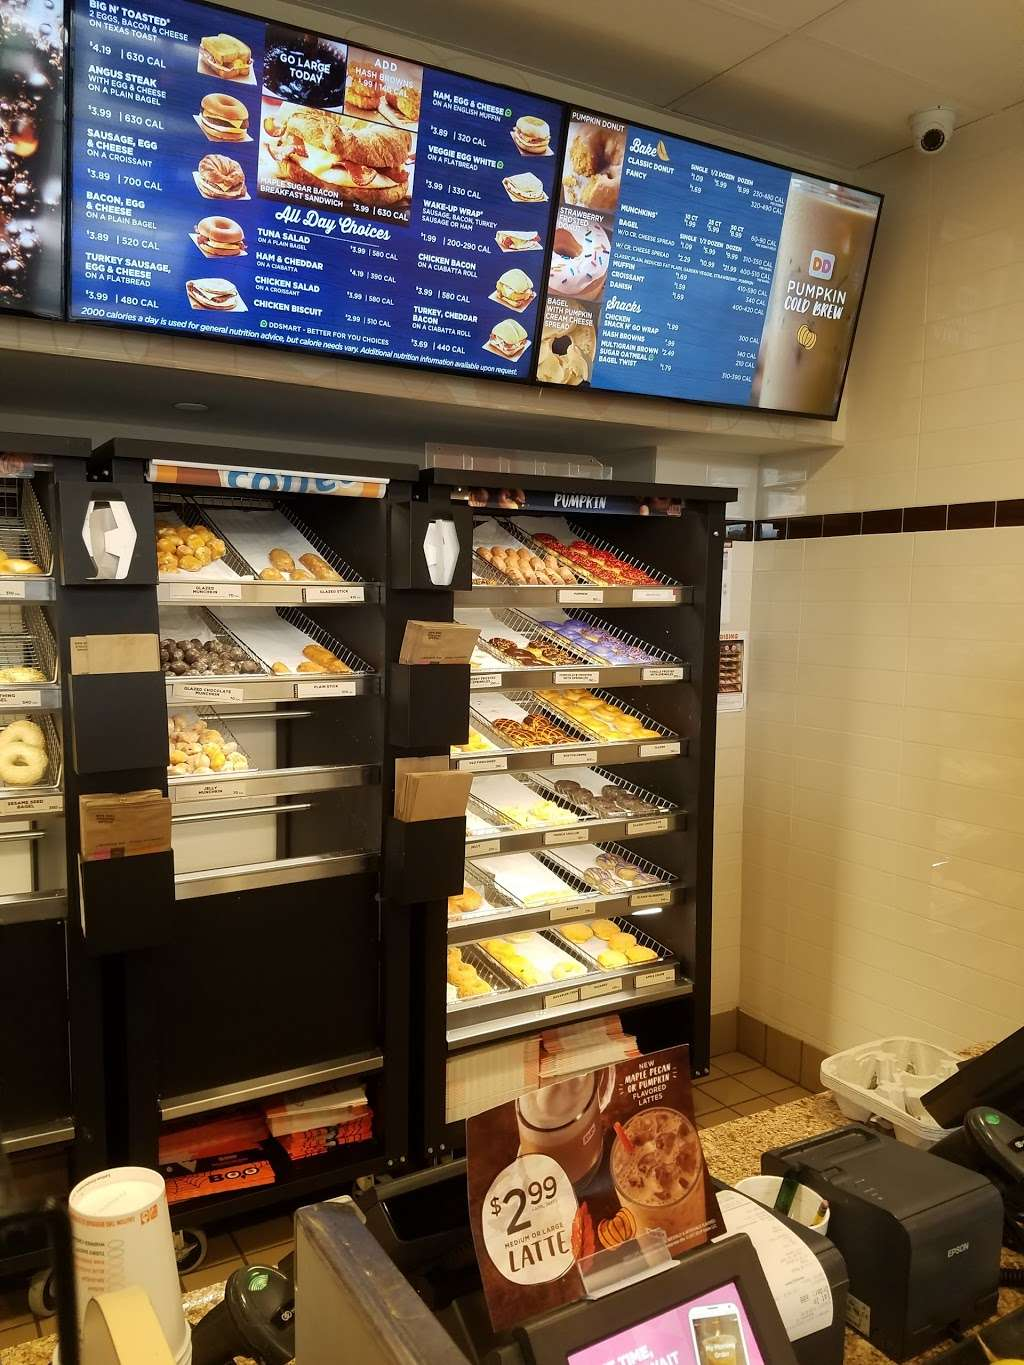 Dunkin Donuts - cafe  | Photo 4 of 10 | Address: 500 Ave at Port Imperial, Weehawken, NJ 07086, USA | Phone: (201) 766-1432